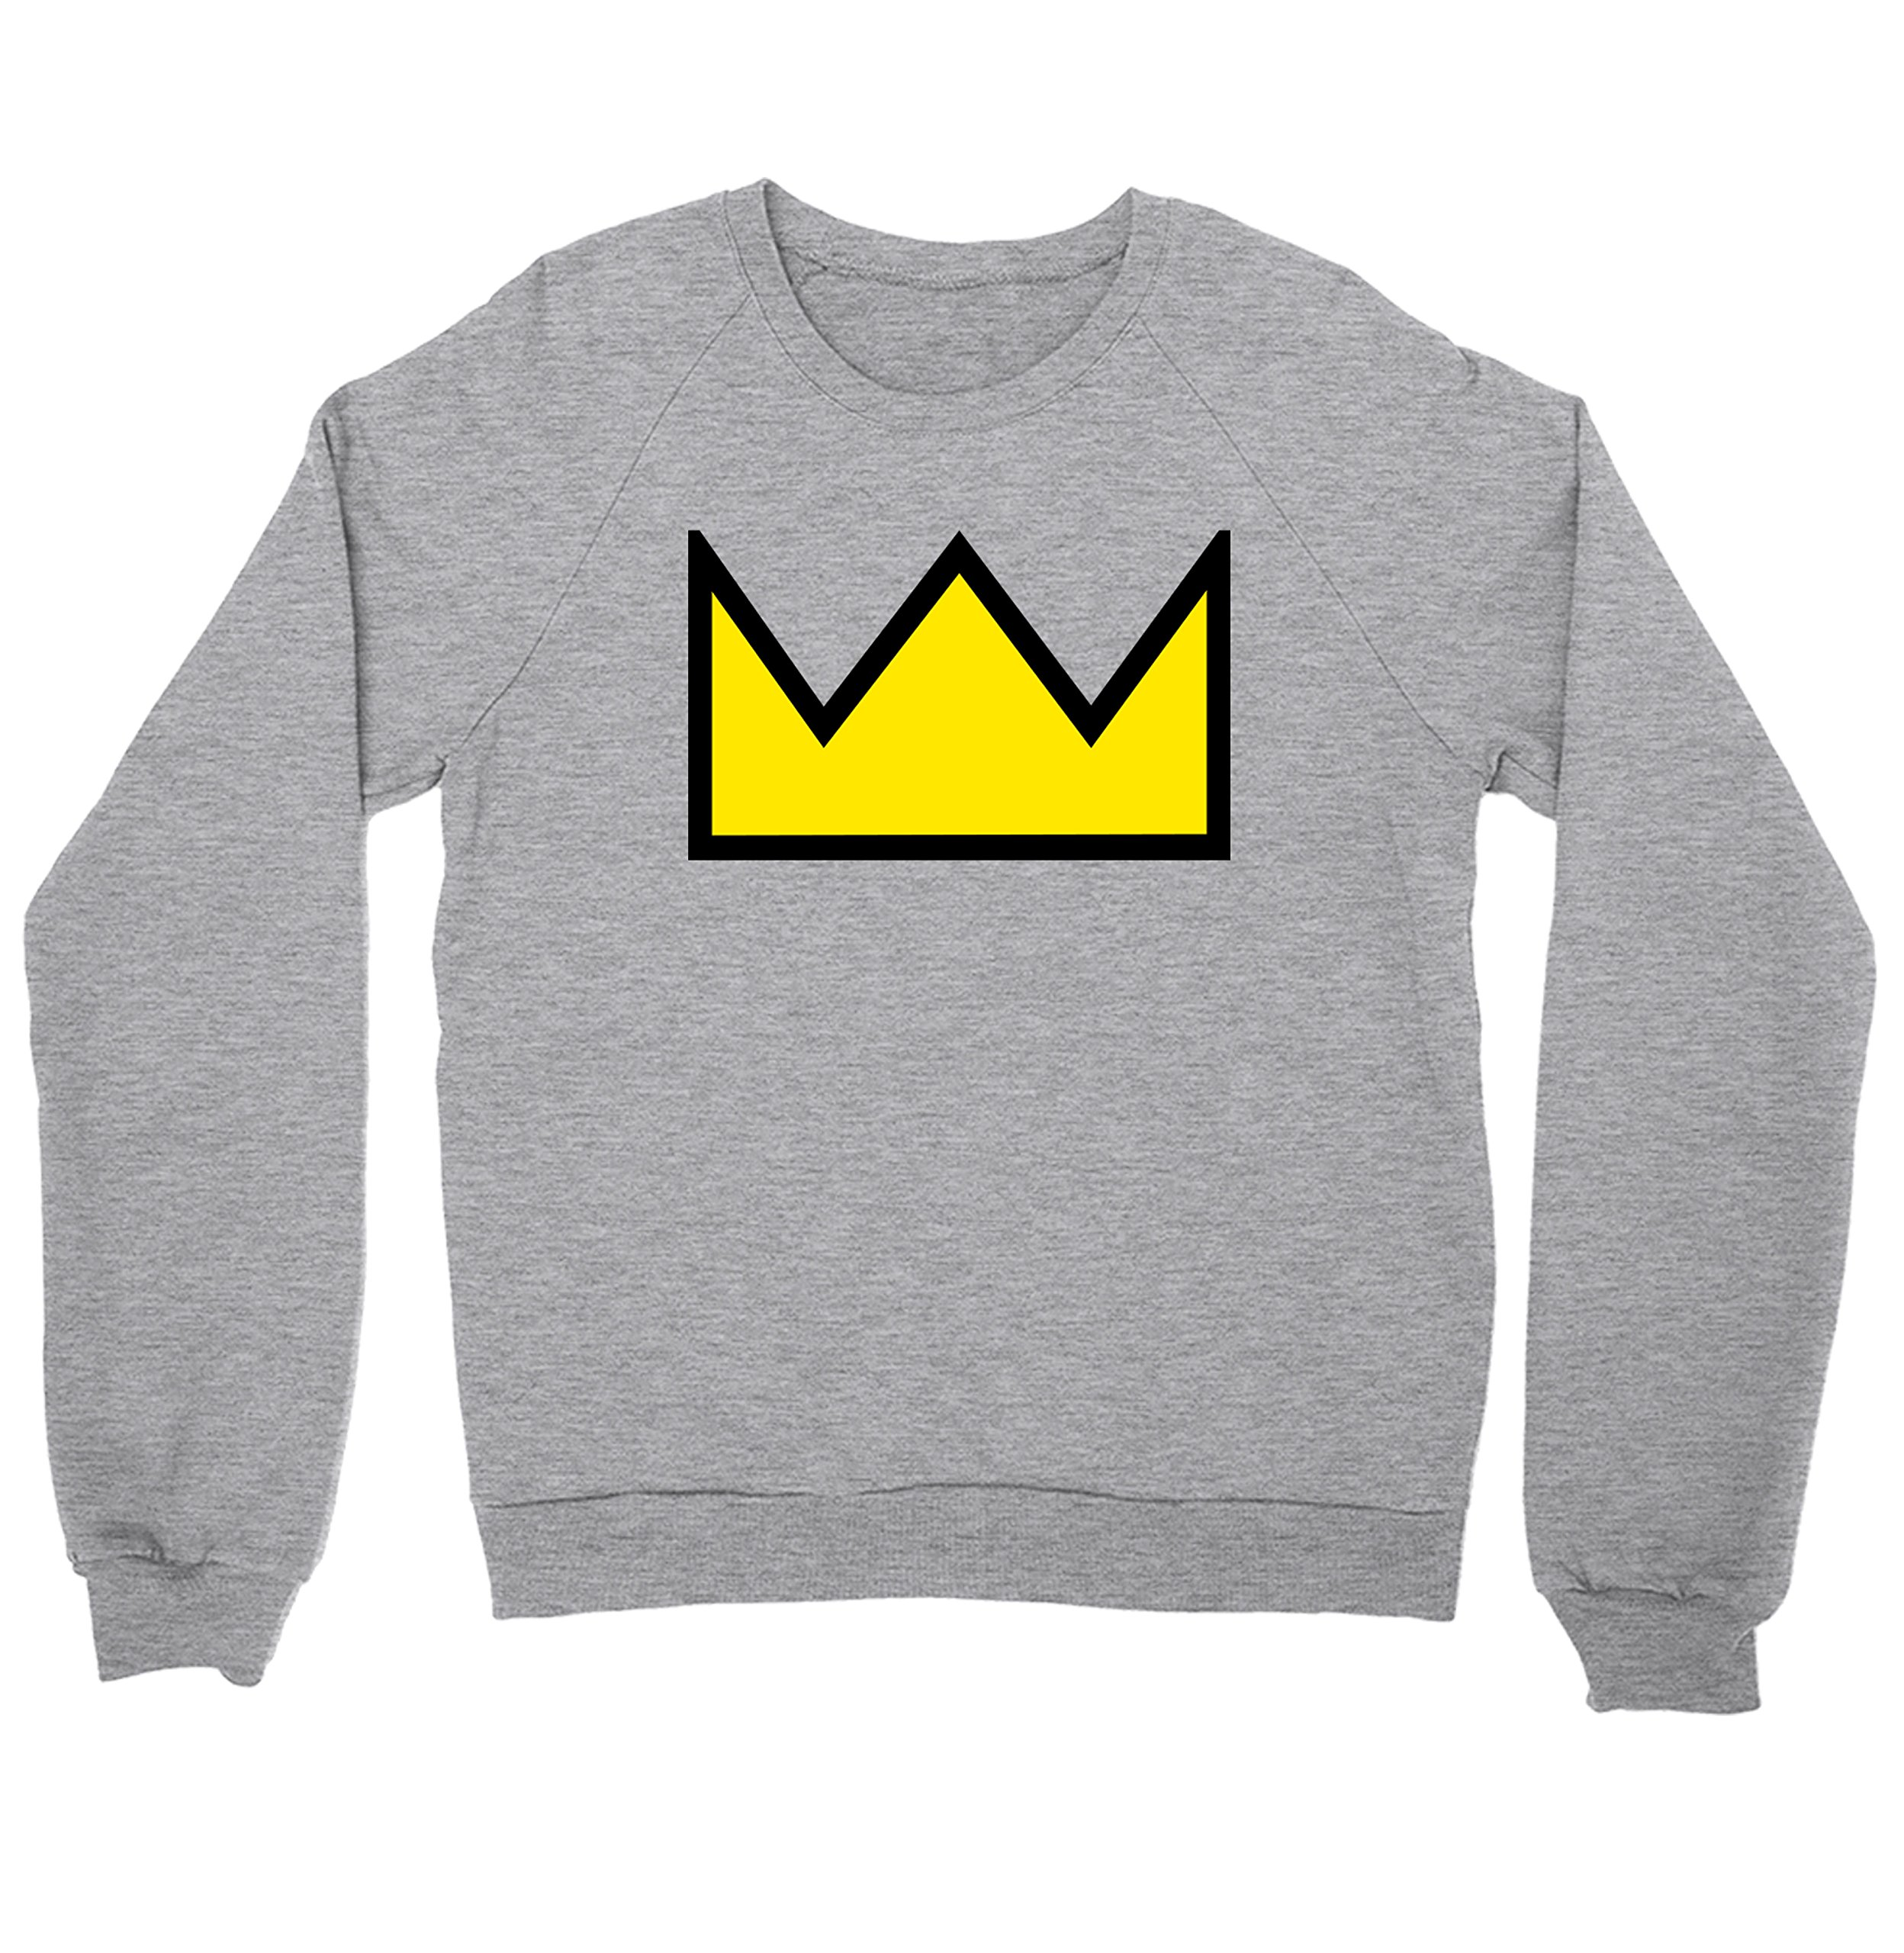 FUNKI SHOP Betty's Crown Sweater Super Comfy Pullover Sweatshirt